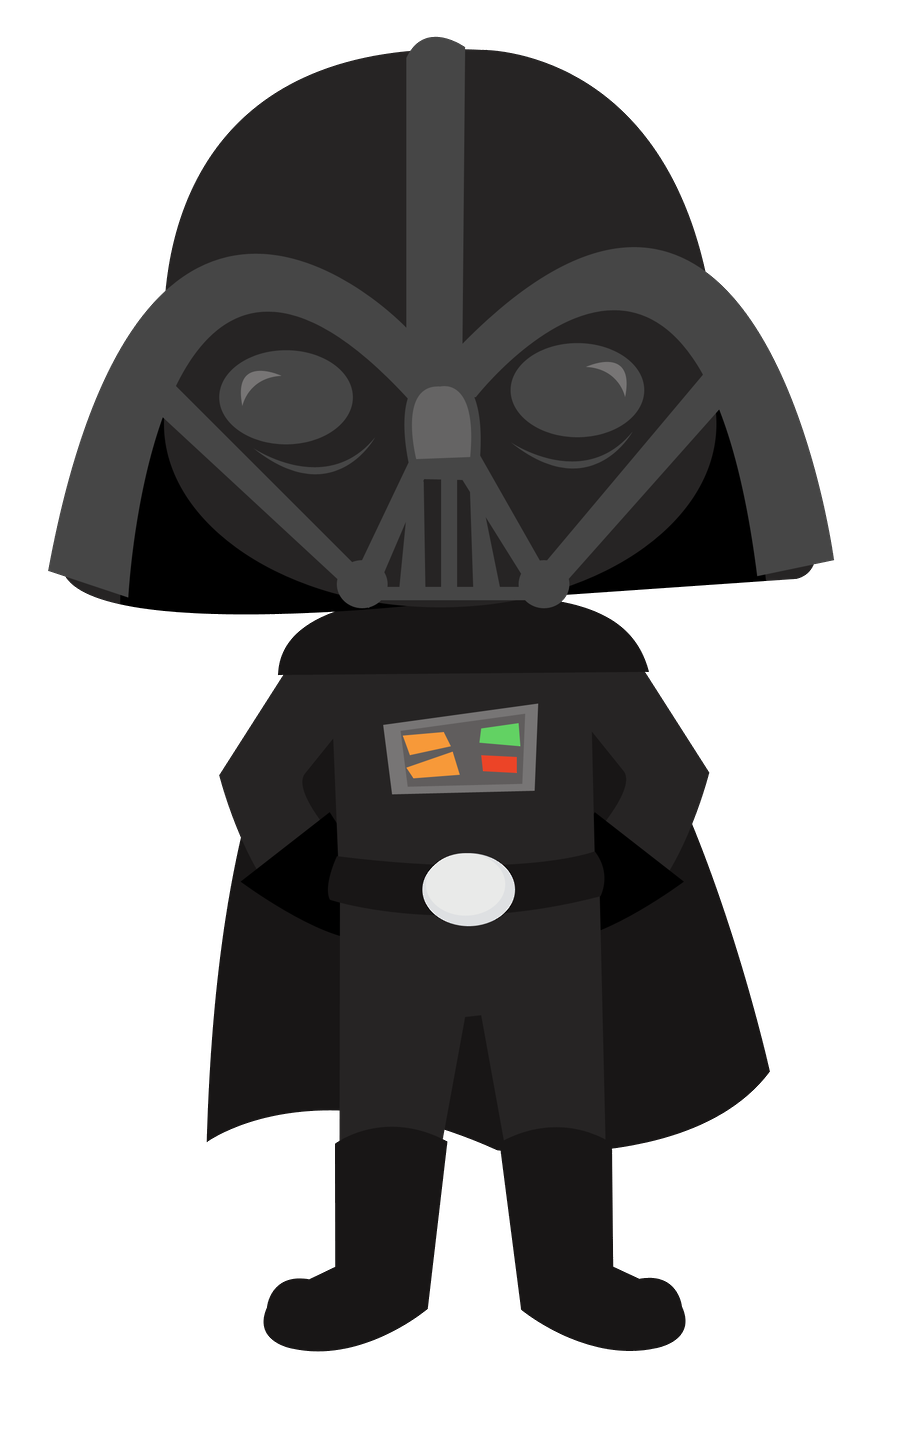 Star wars baby clipart image freeuse download Starwars Clipart - clipart image freeuse download